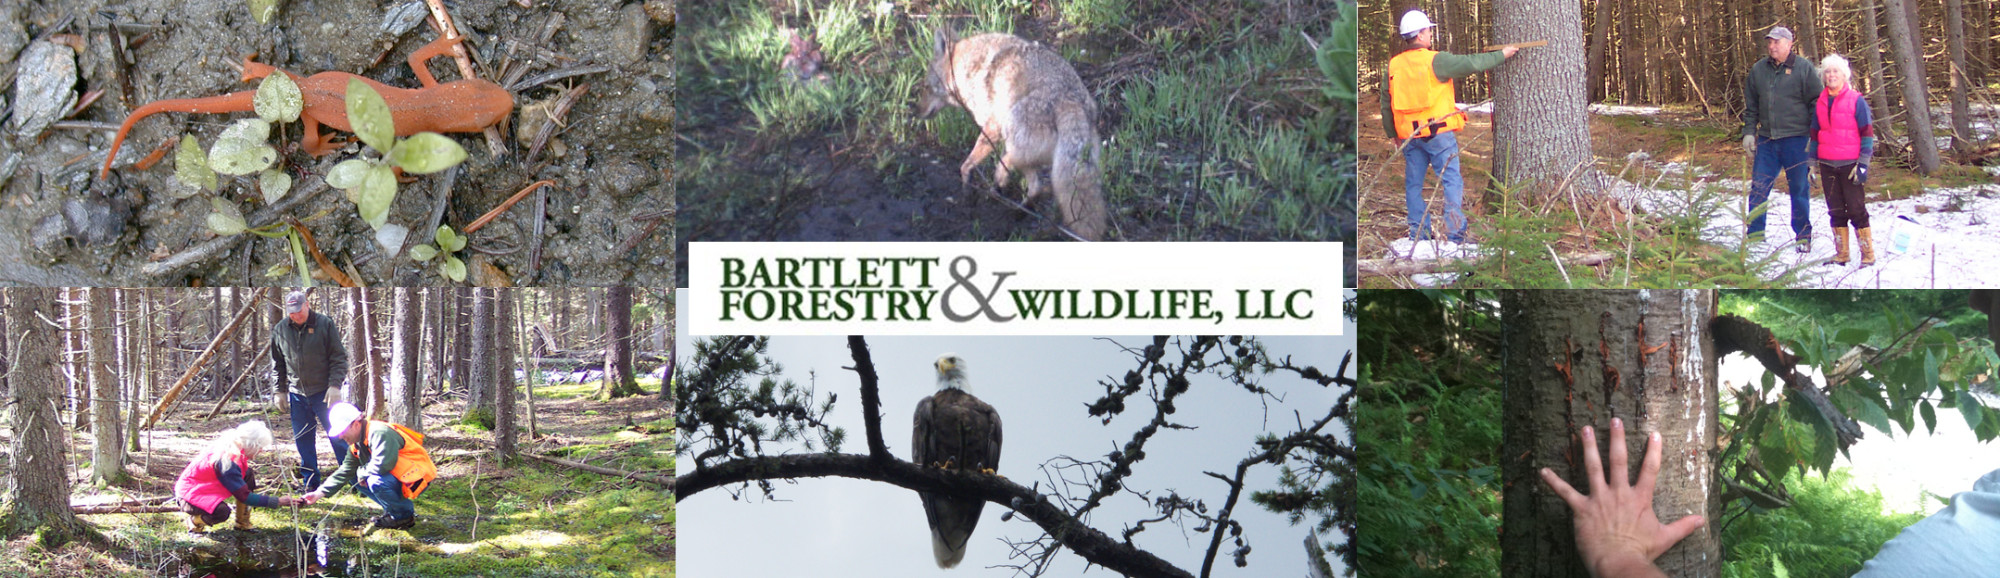 Bartlett Forestry & Wildlife, LLC